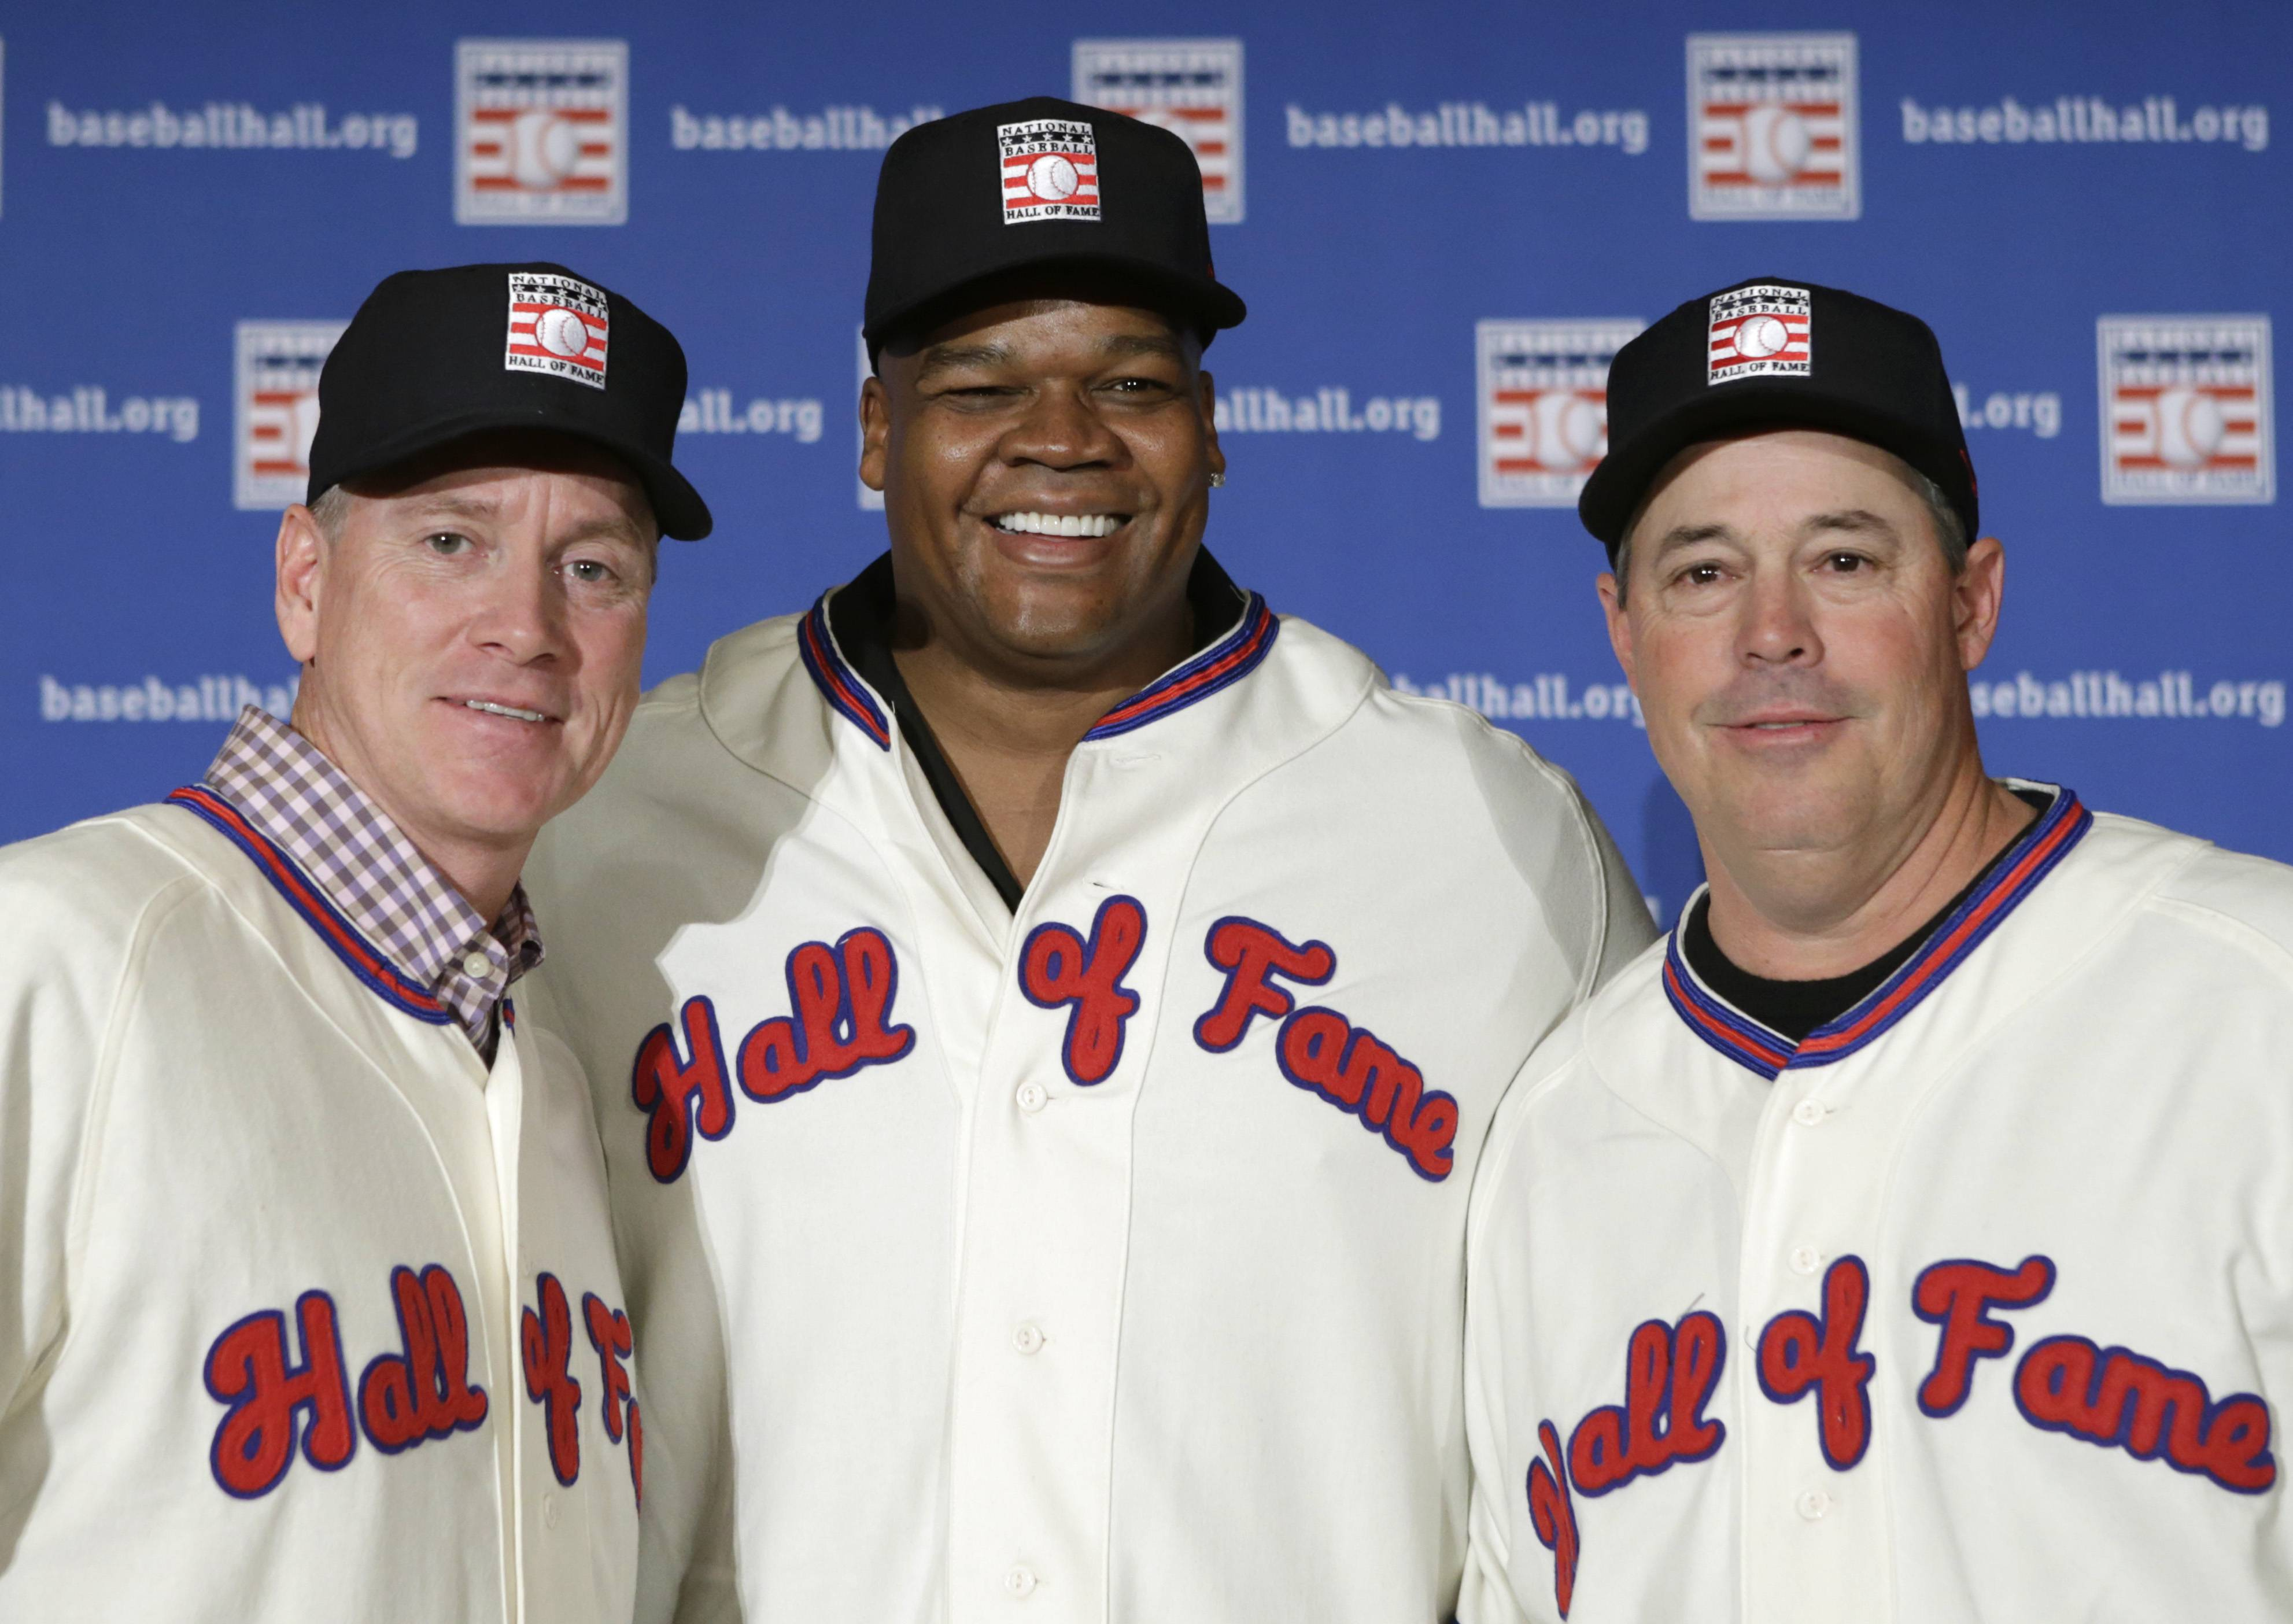 Former Atlanta Braves pitchers Tom Glavine, left, and Greg Maddux, right, pose with Chicago White Sox slugger Frank Thomas after a news conference announcing their election to the 2014 Baseball Hall of Fame class in New York. Induction ceremonies are Sunday in Cooperstown, N.Y.